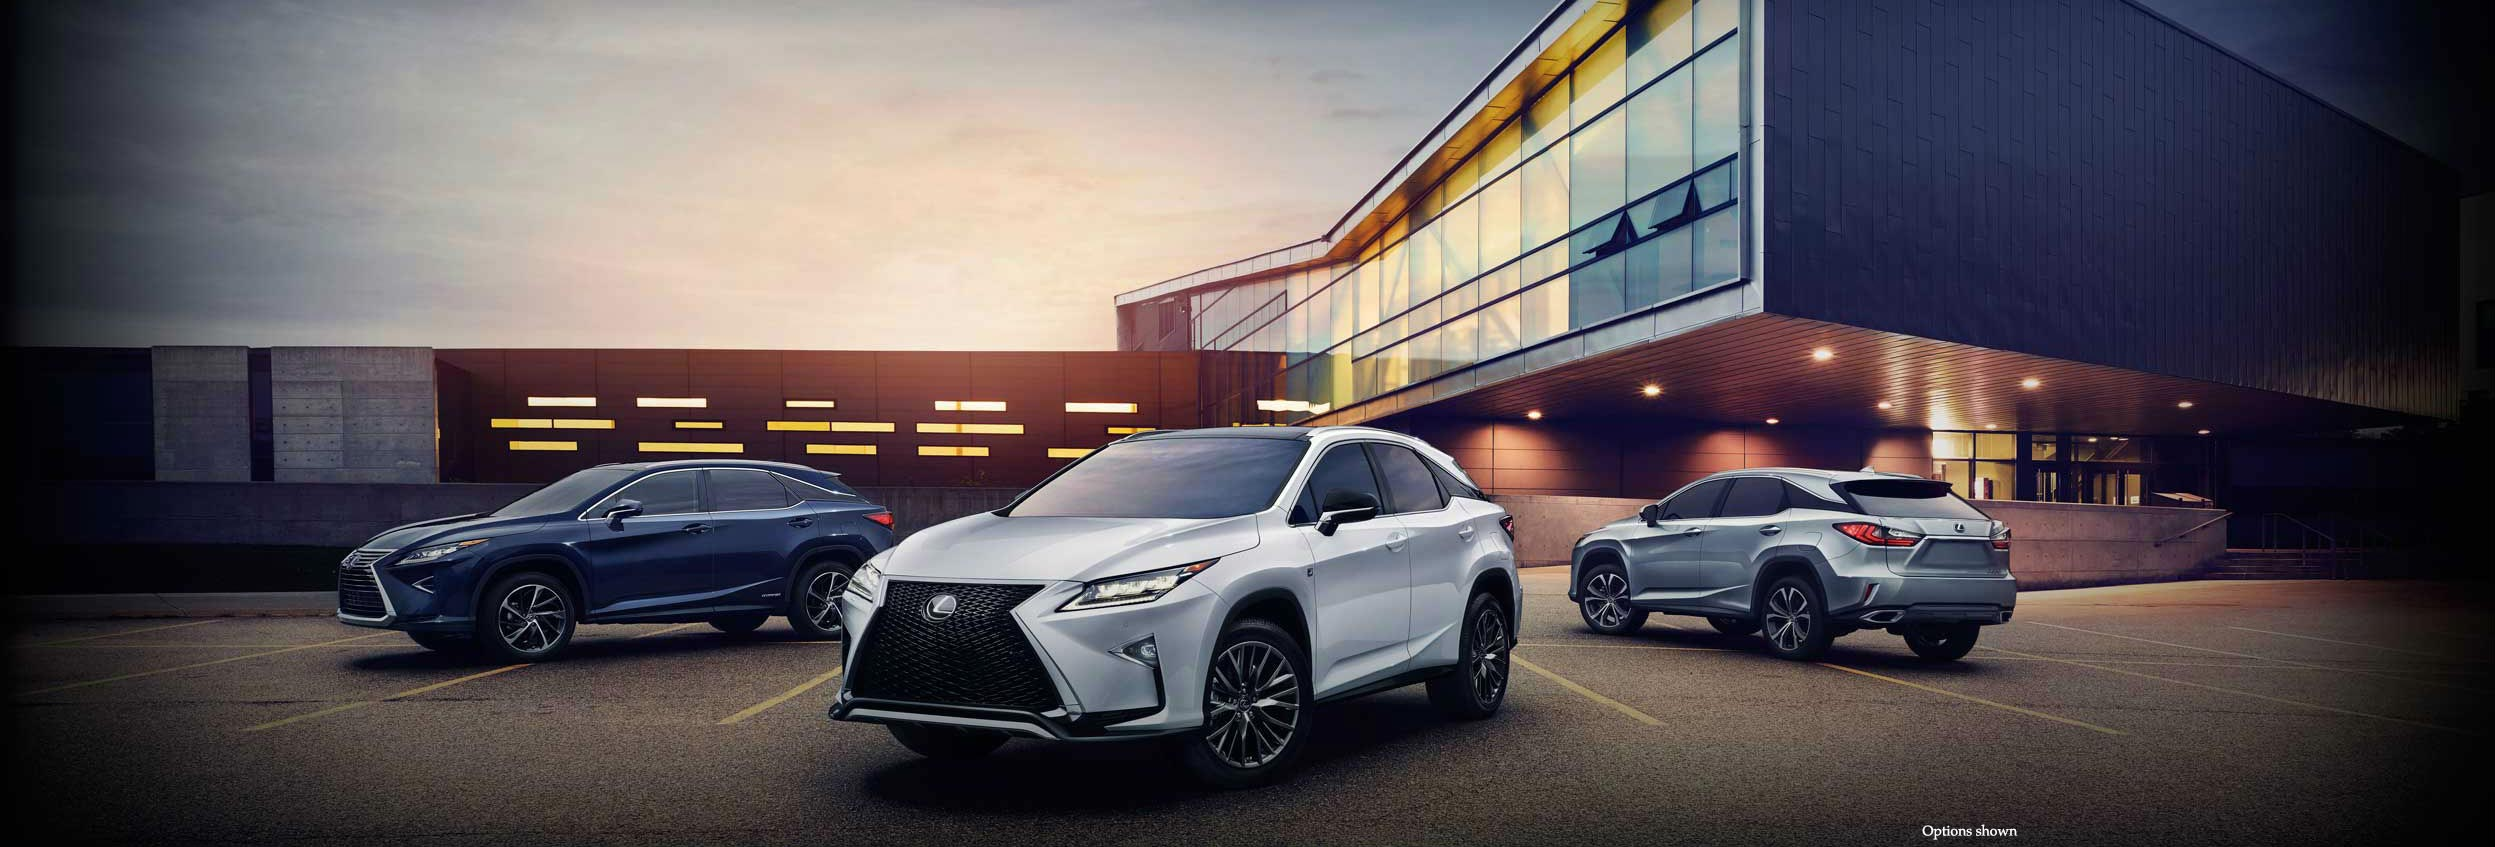 Larry H. Miller Lexus Of Spokane | New Lexus Dealership In Spokane, WA 99201